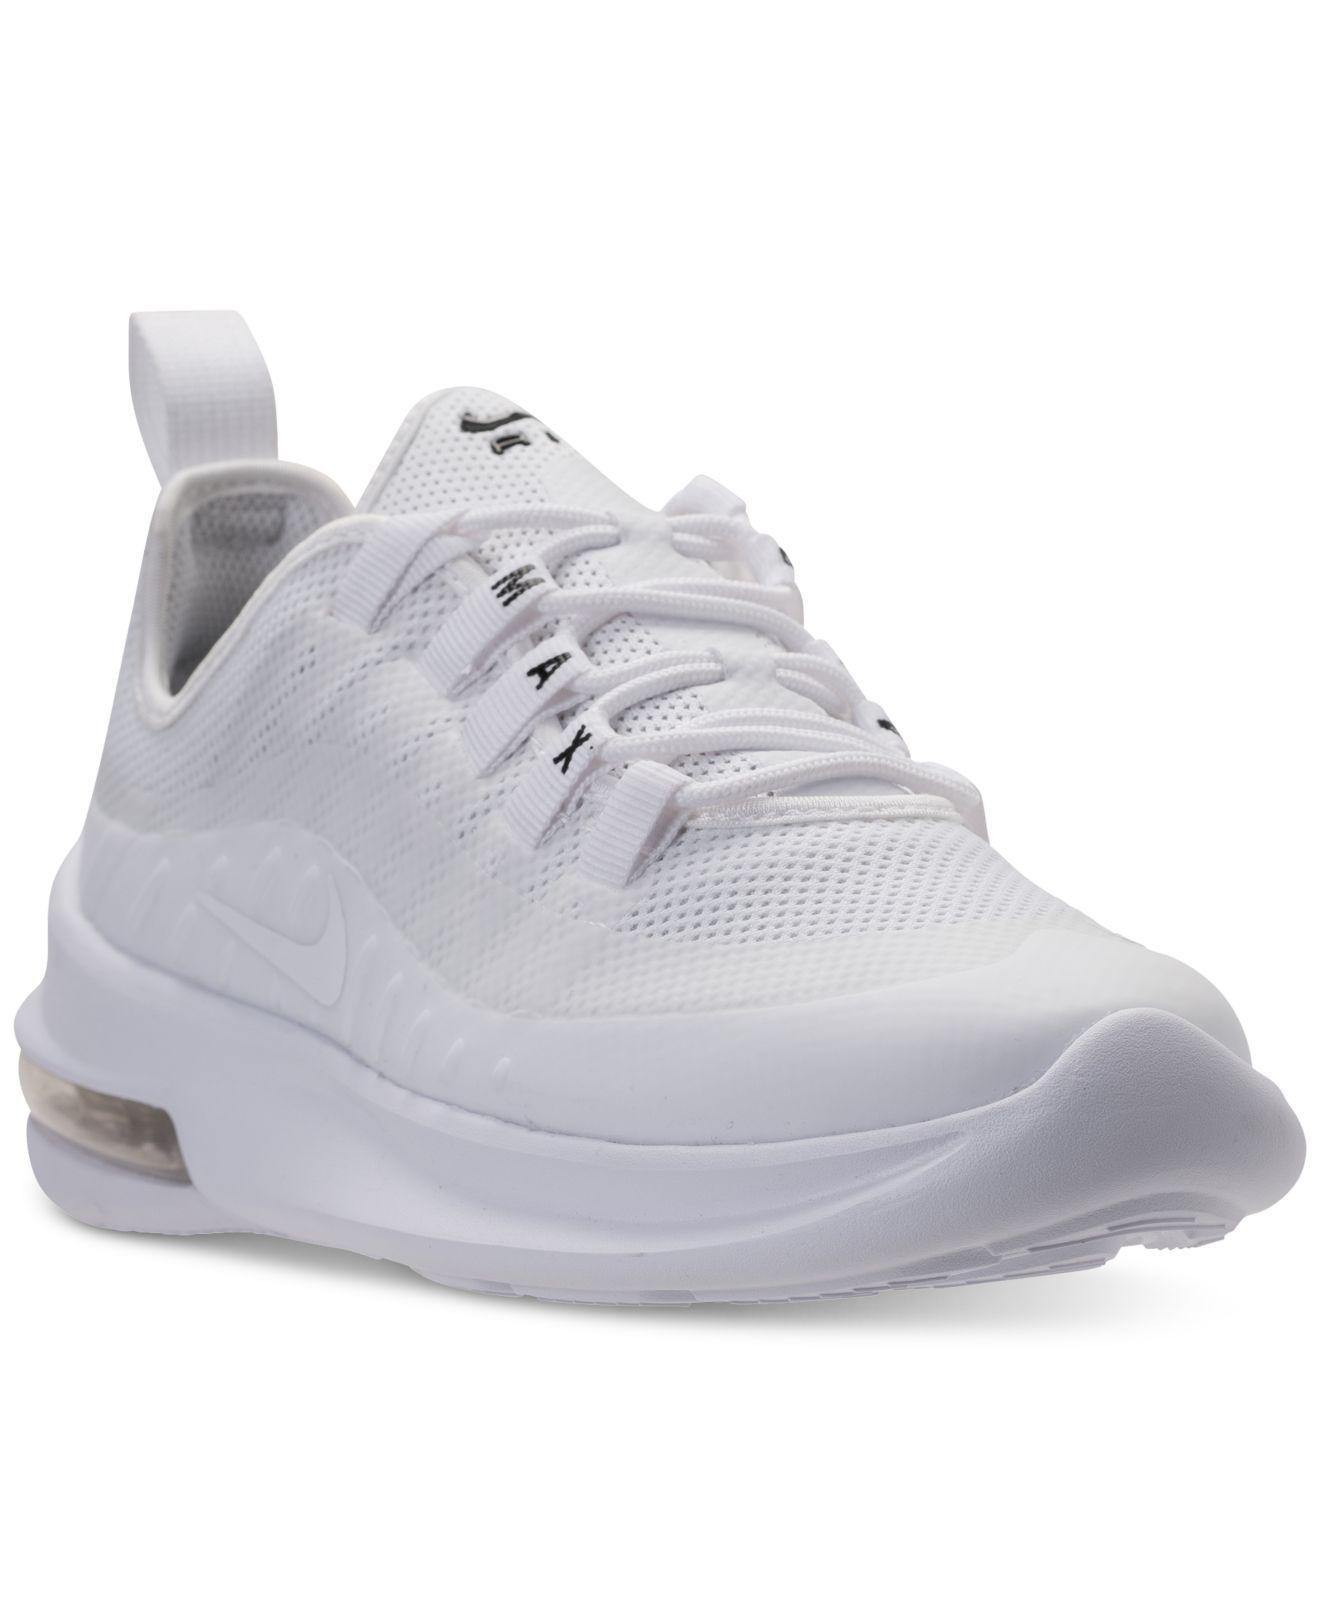 detailed look 4f85e 17ef7 Nike Air Max Axis Casual Sneakers From Finish Line in White - Lyst